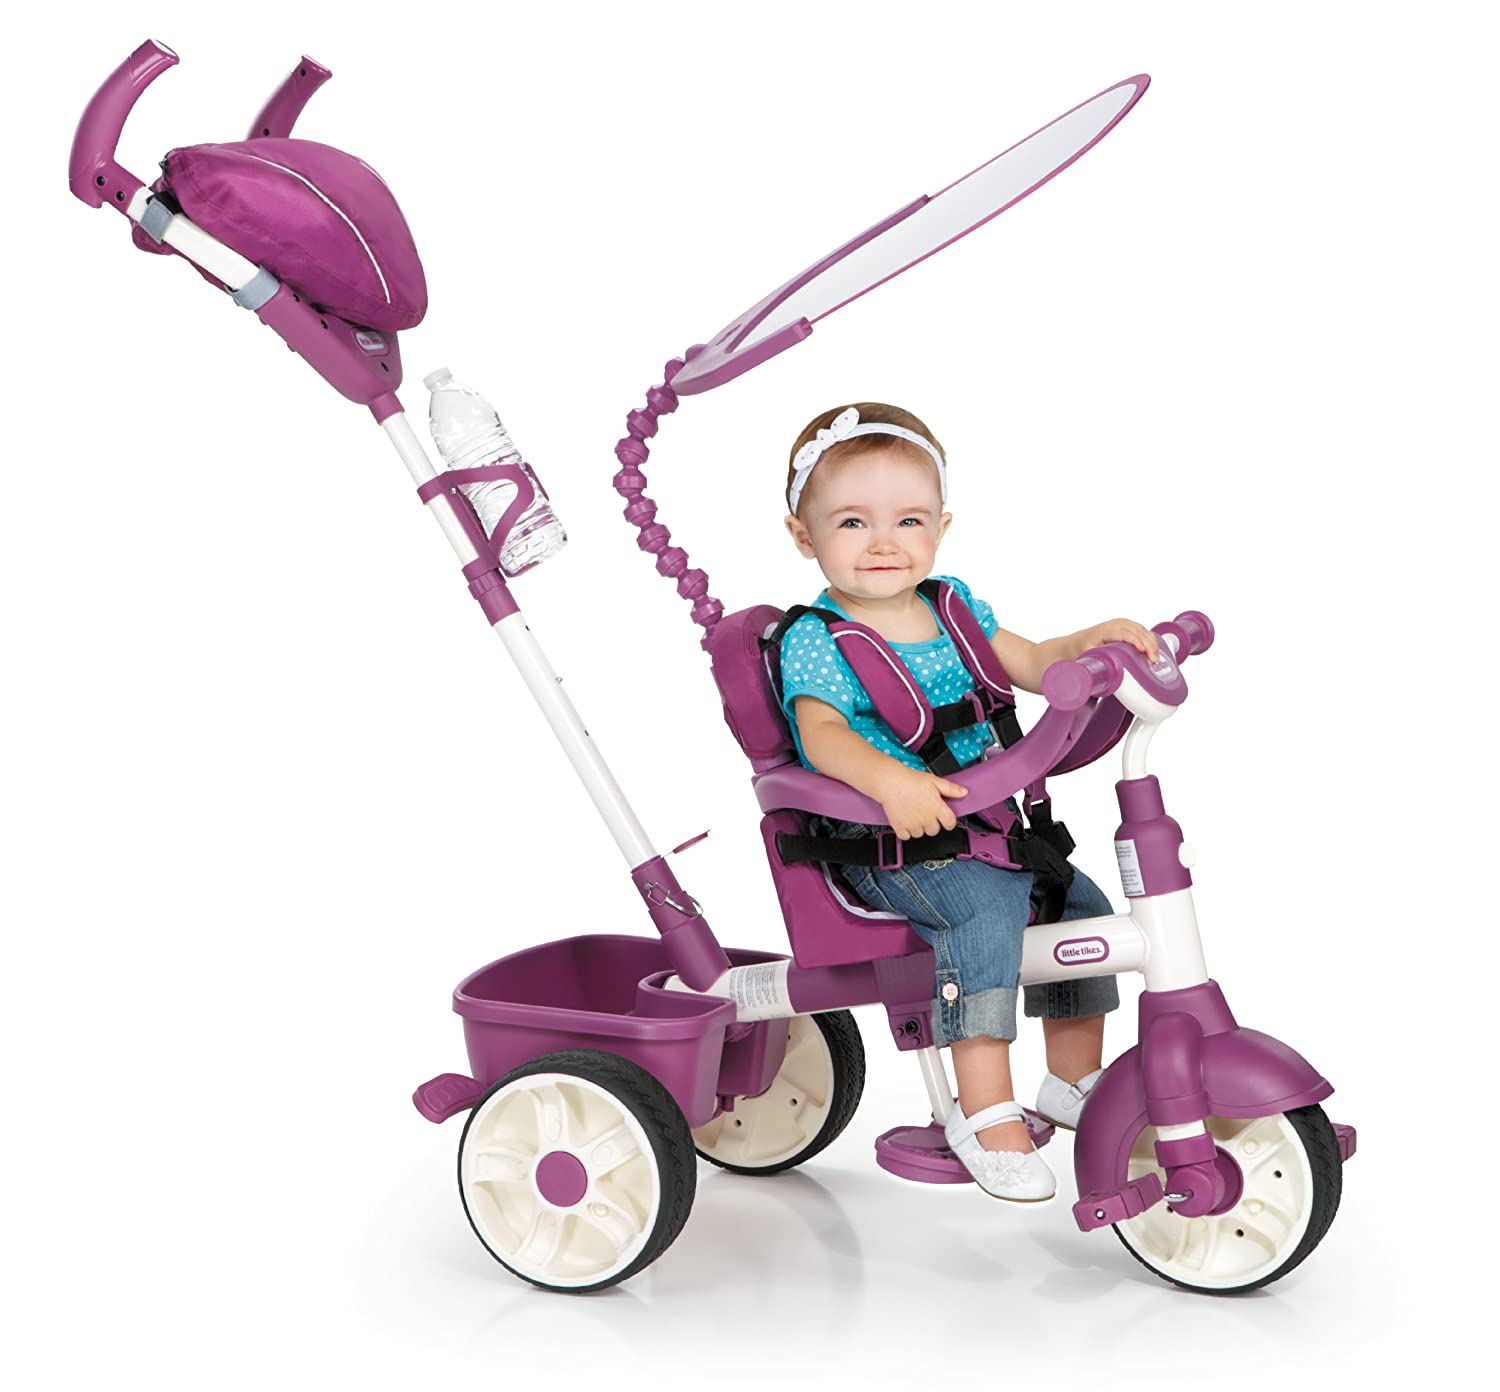 An Image of Little Tikes 4-in-1 Trike Ride On, Pink/Purple, Sports Edition